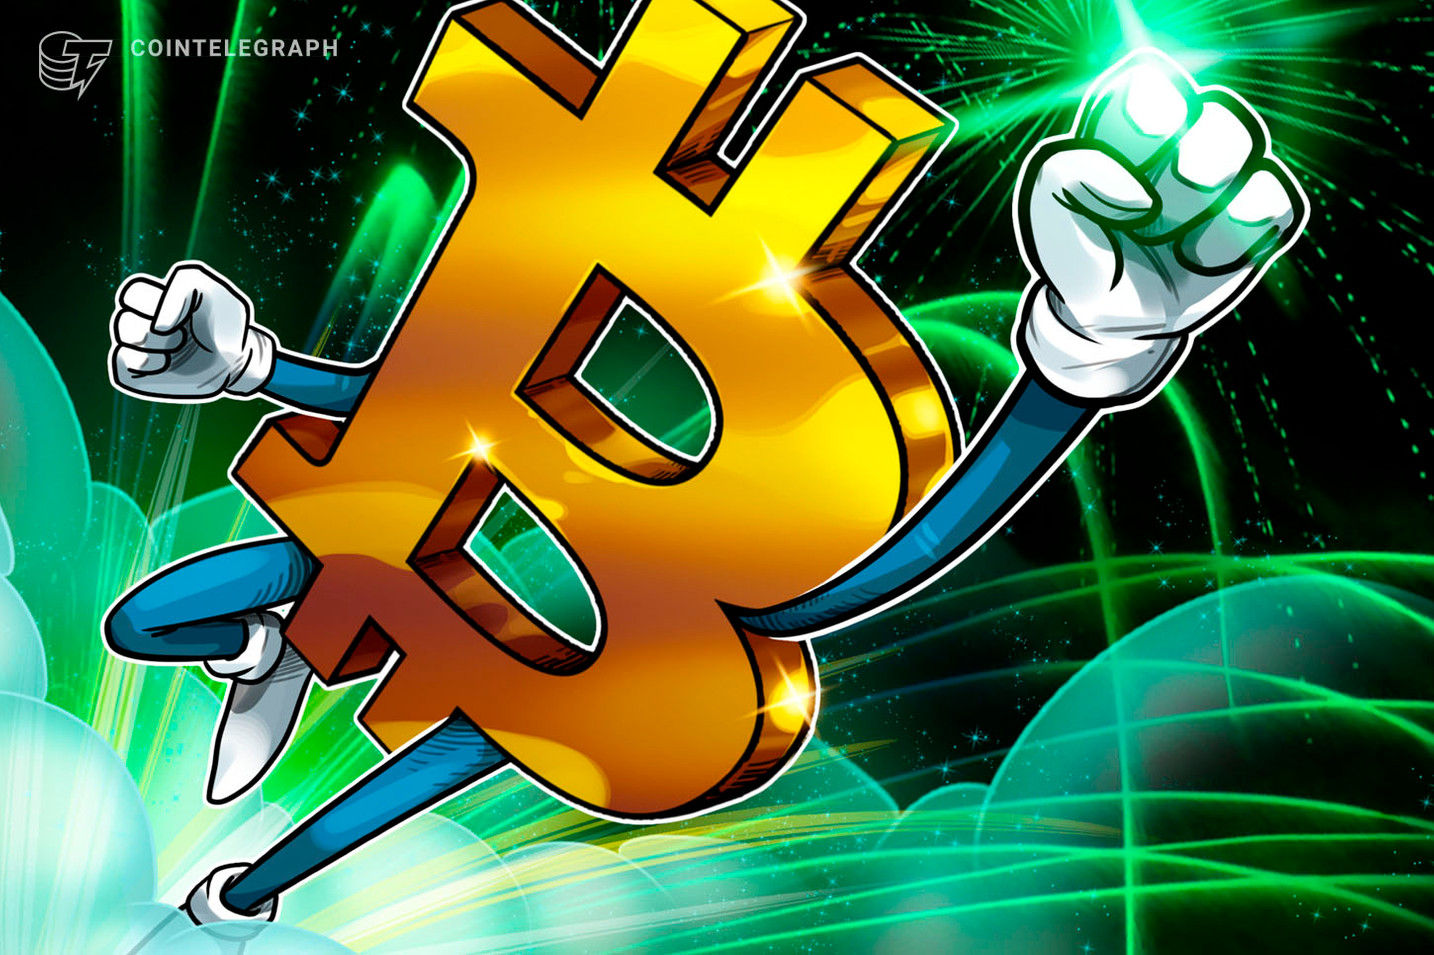 Hedge fund predicts $115K Bitcoin price and the fall of 'speculative' altcoins